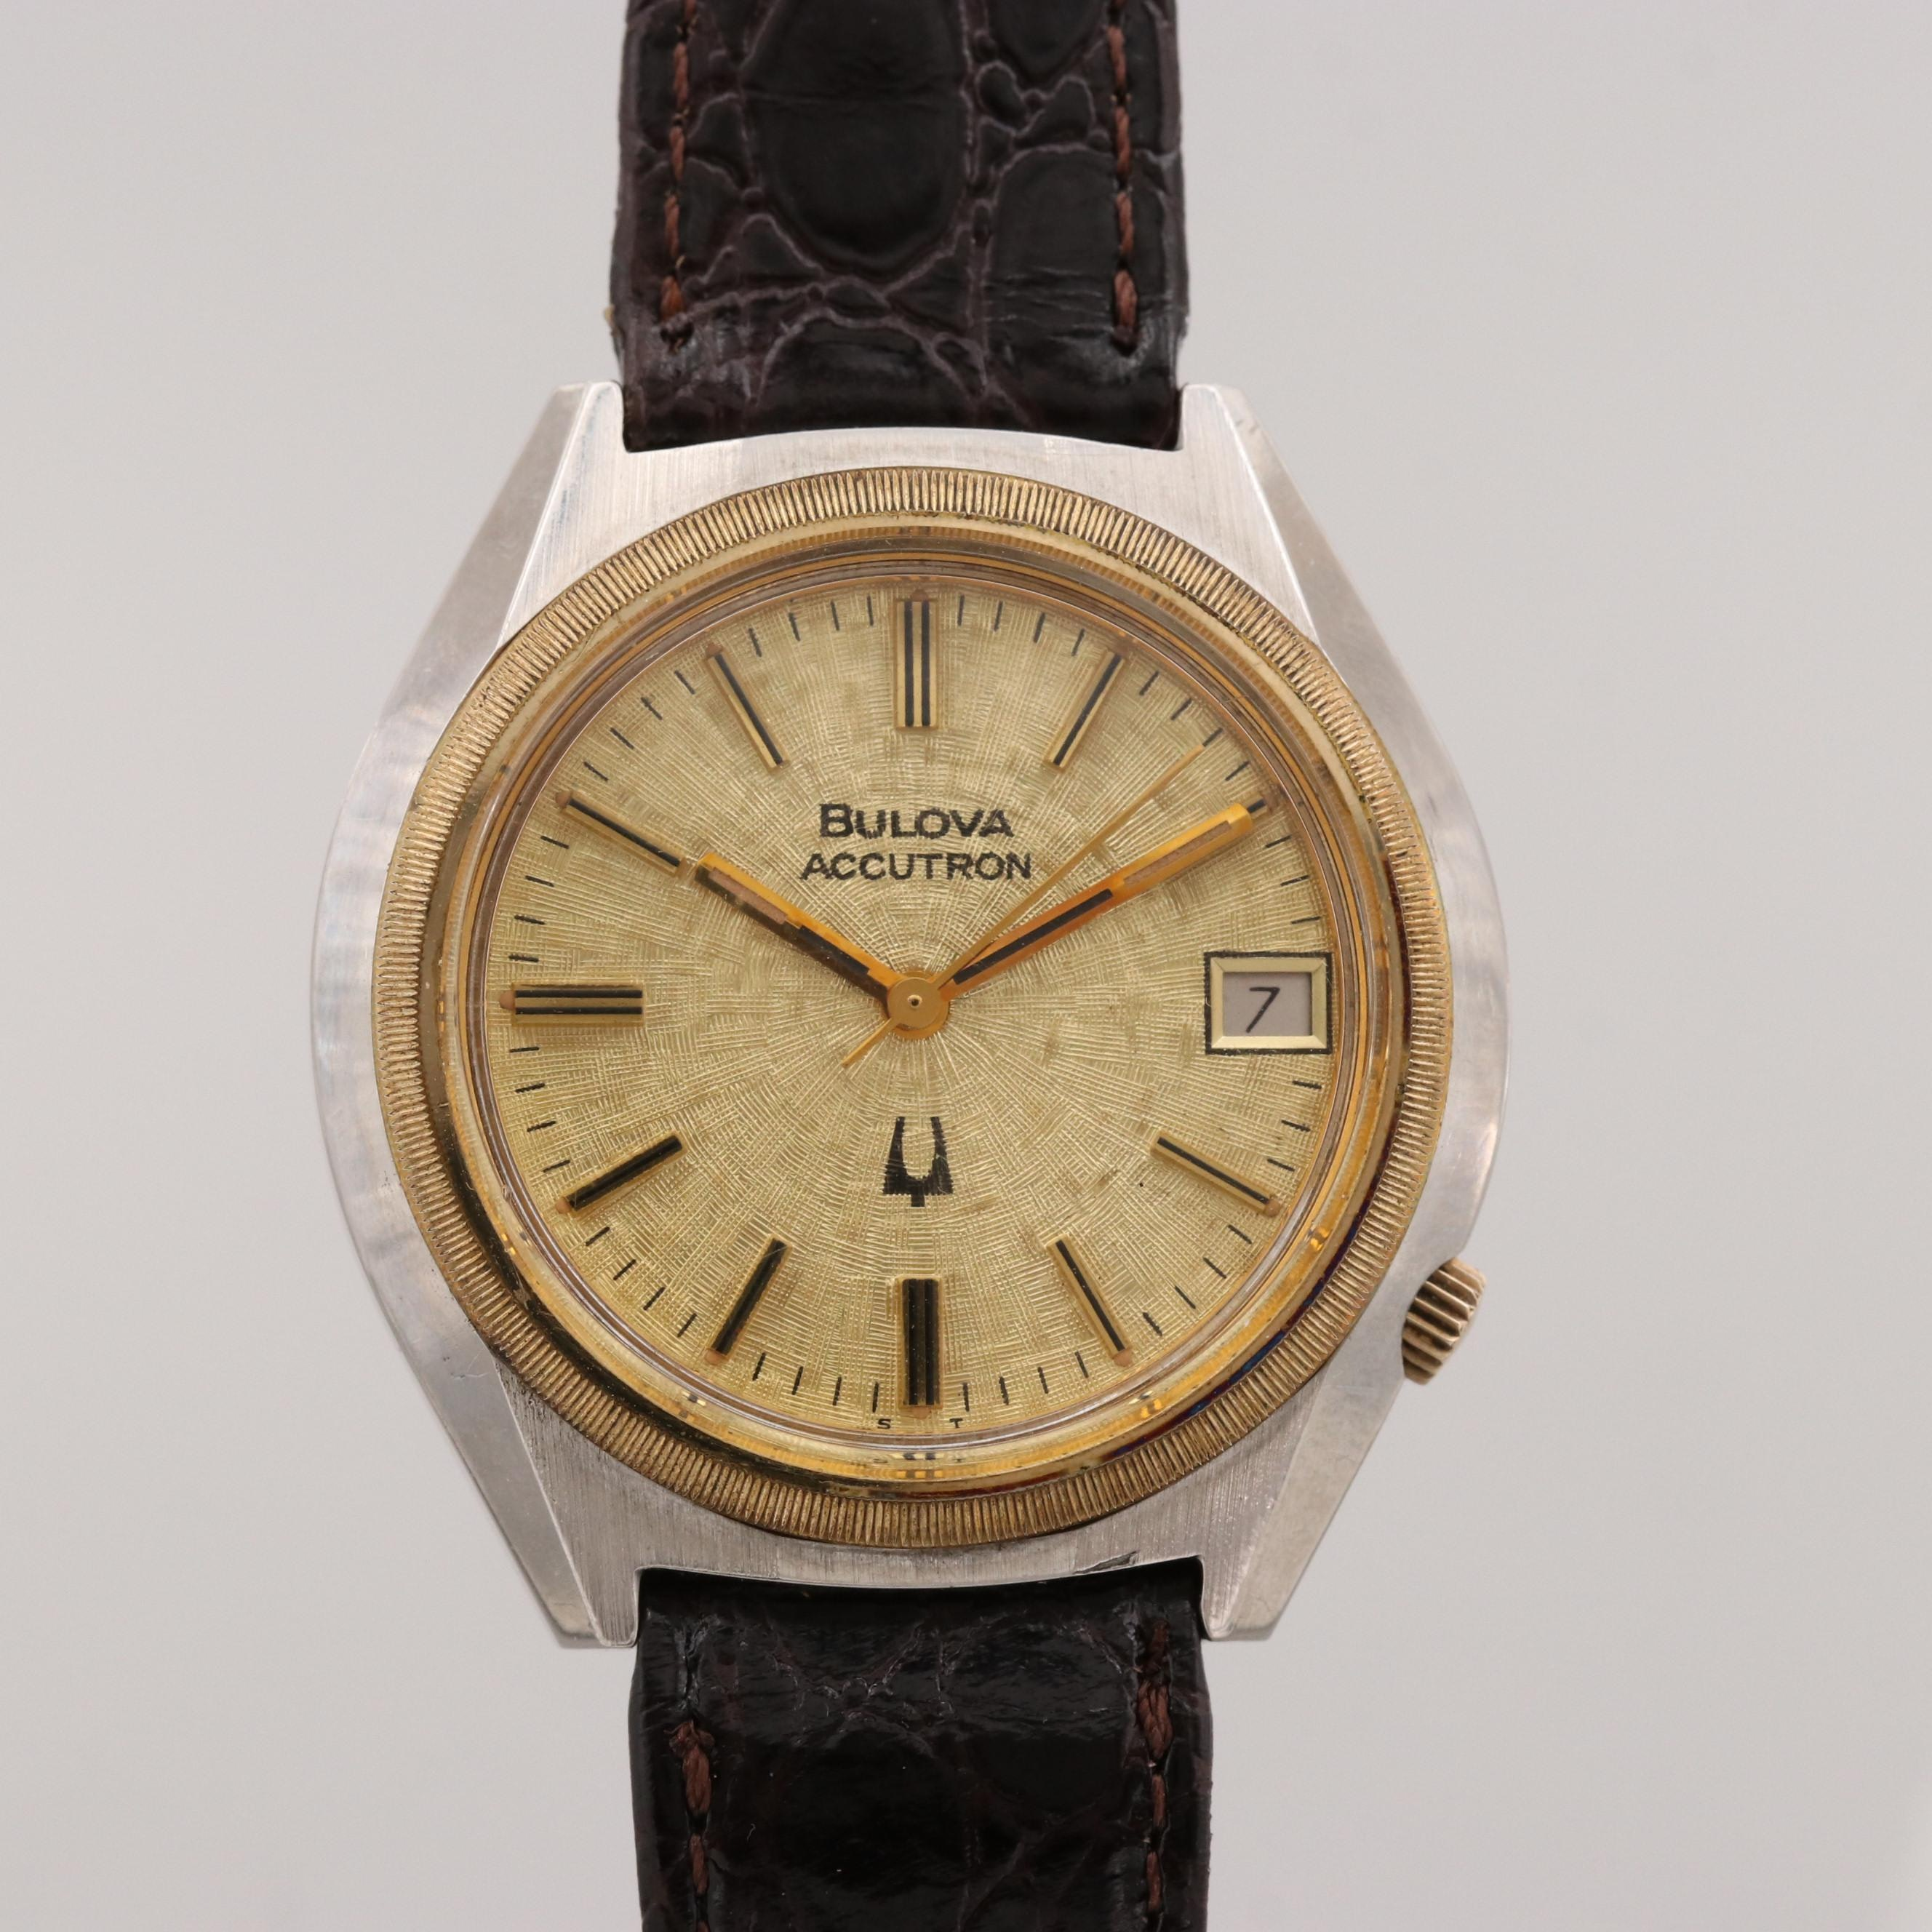 Bulova Accutron Wristwatch With Date Window, 1977